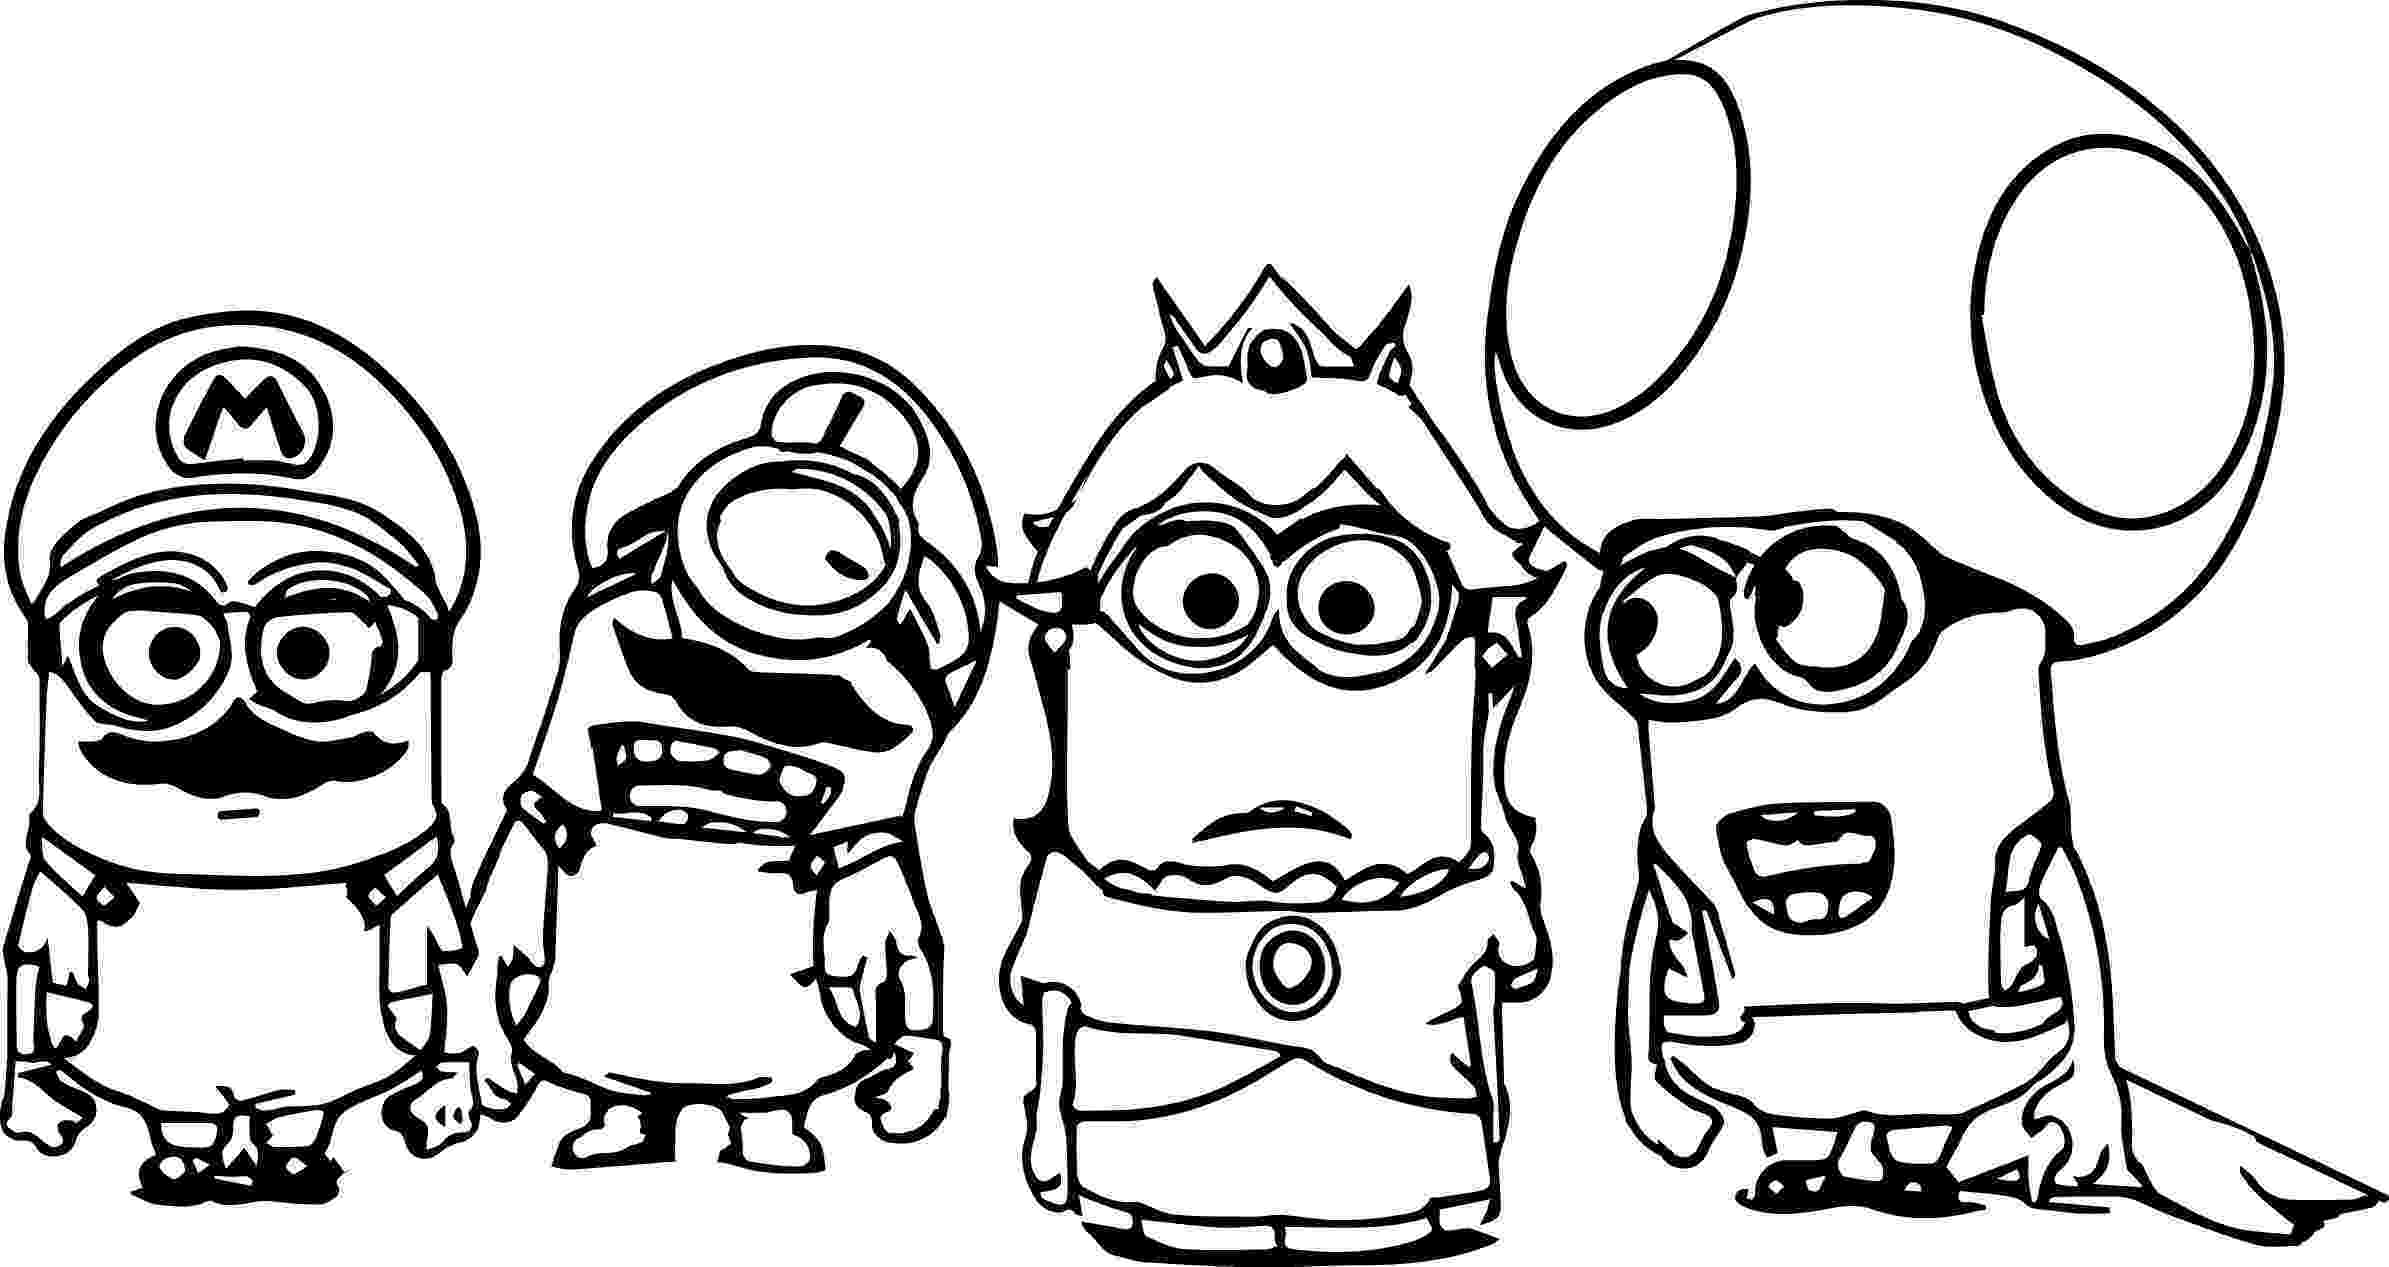 printable pictures of minions minion dave coloring page free printable coloring pages pictures minions of printable